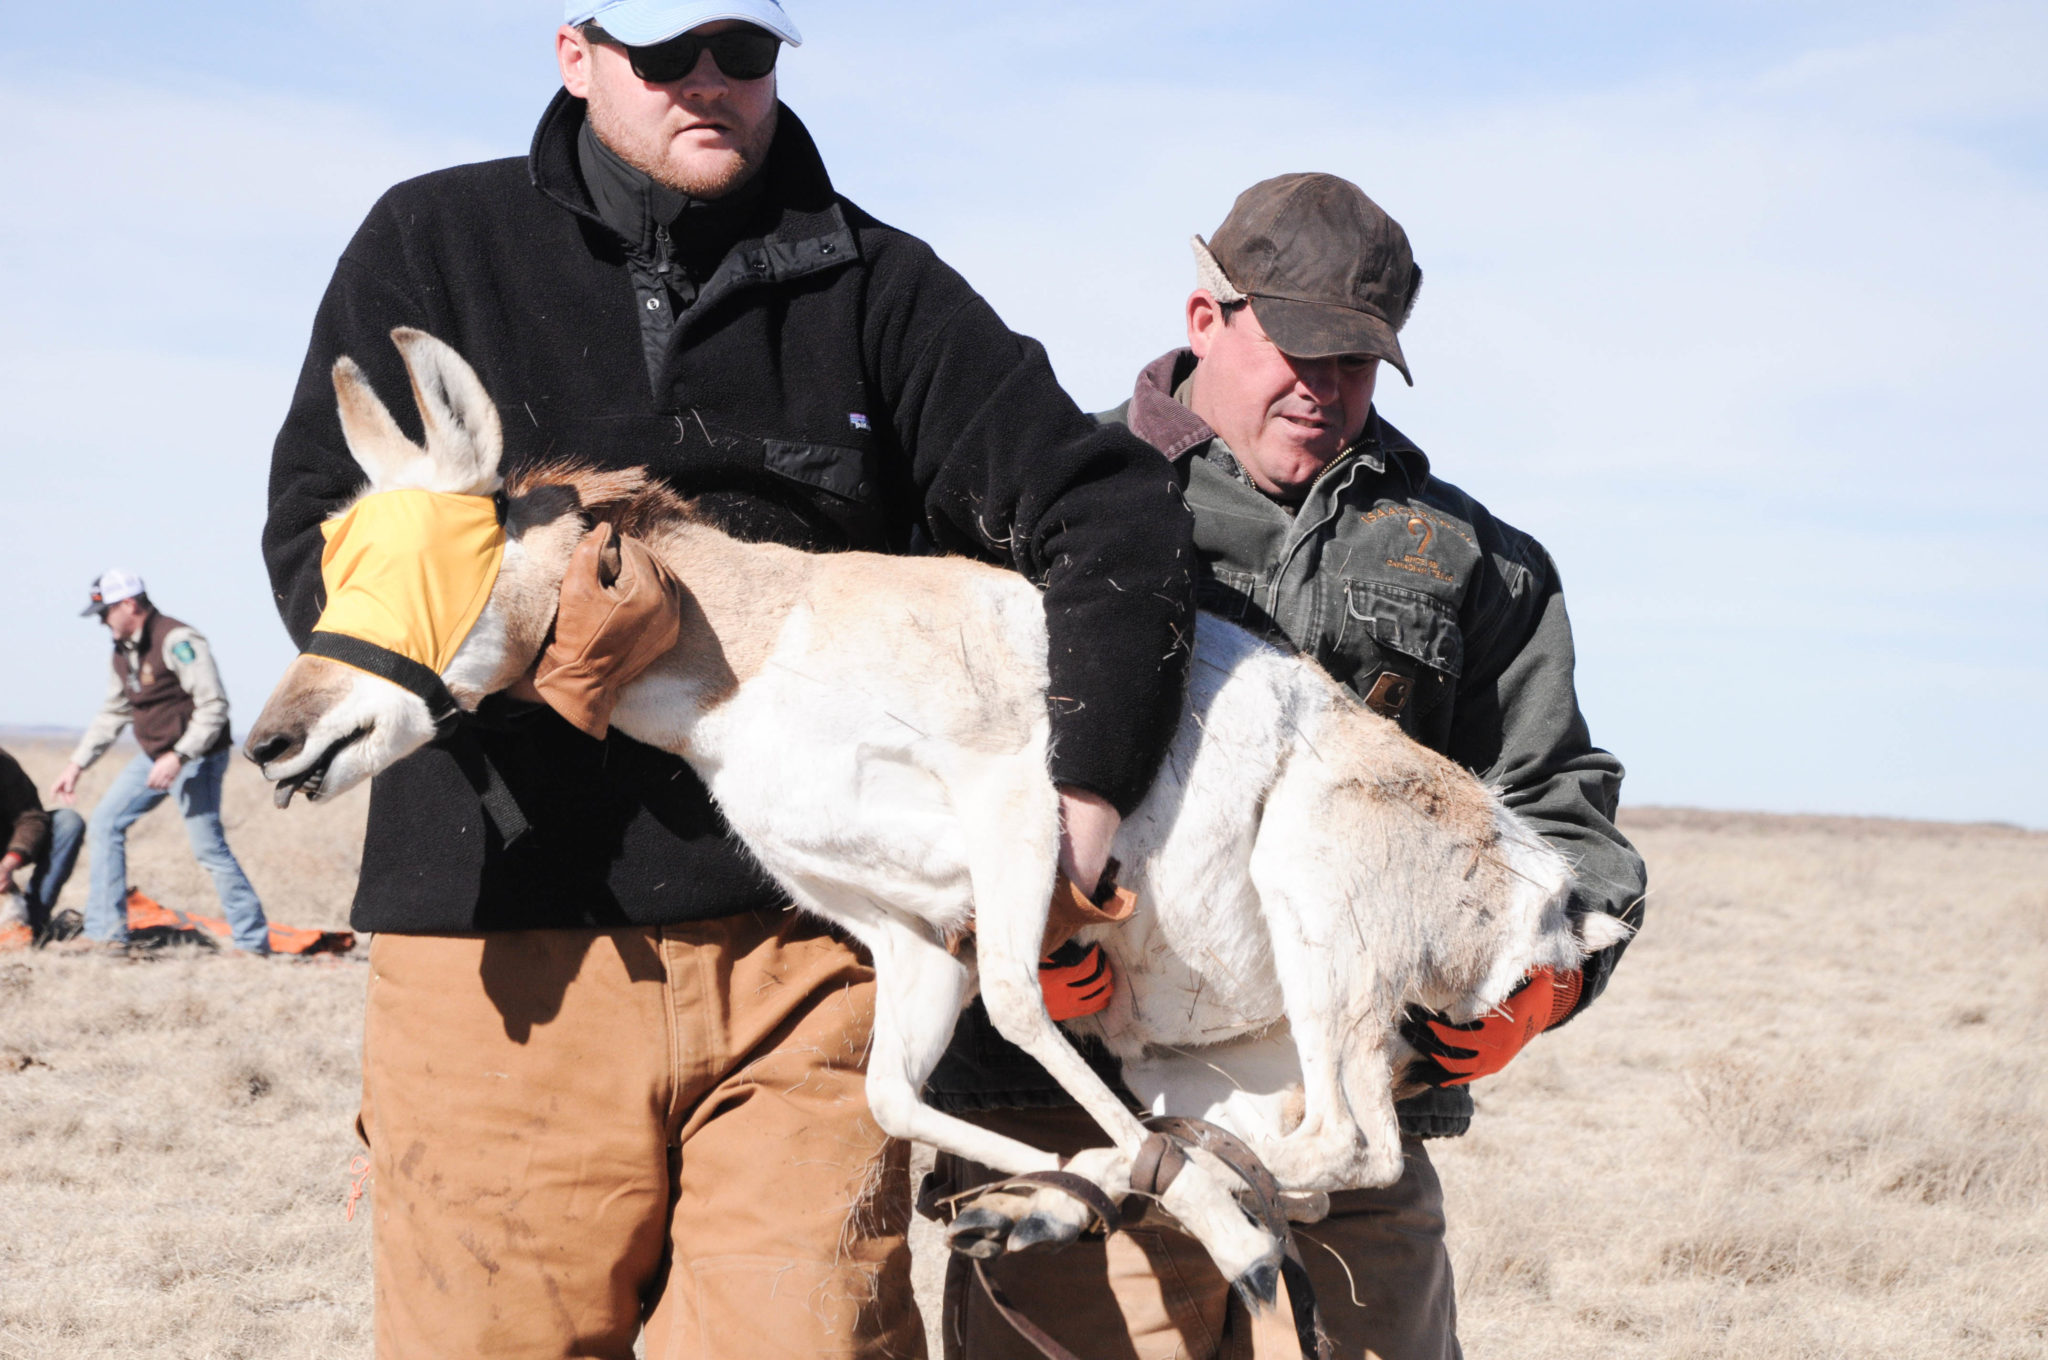 Two volunteers help transport a captured pronghorn to a makeshift service station, where it will receive a variety of injections, including de-wormers and vitamins.